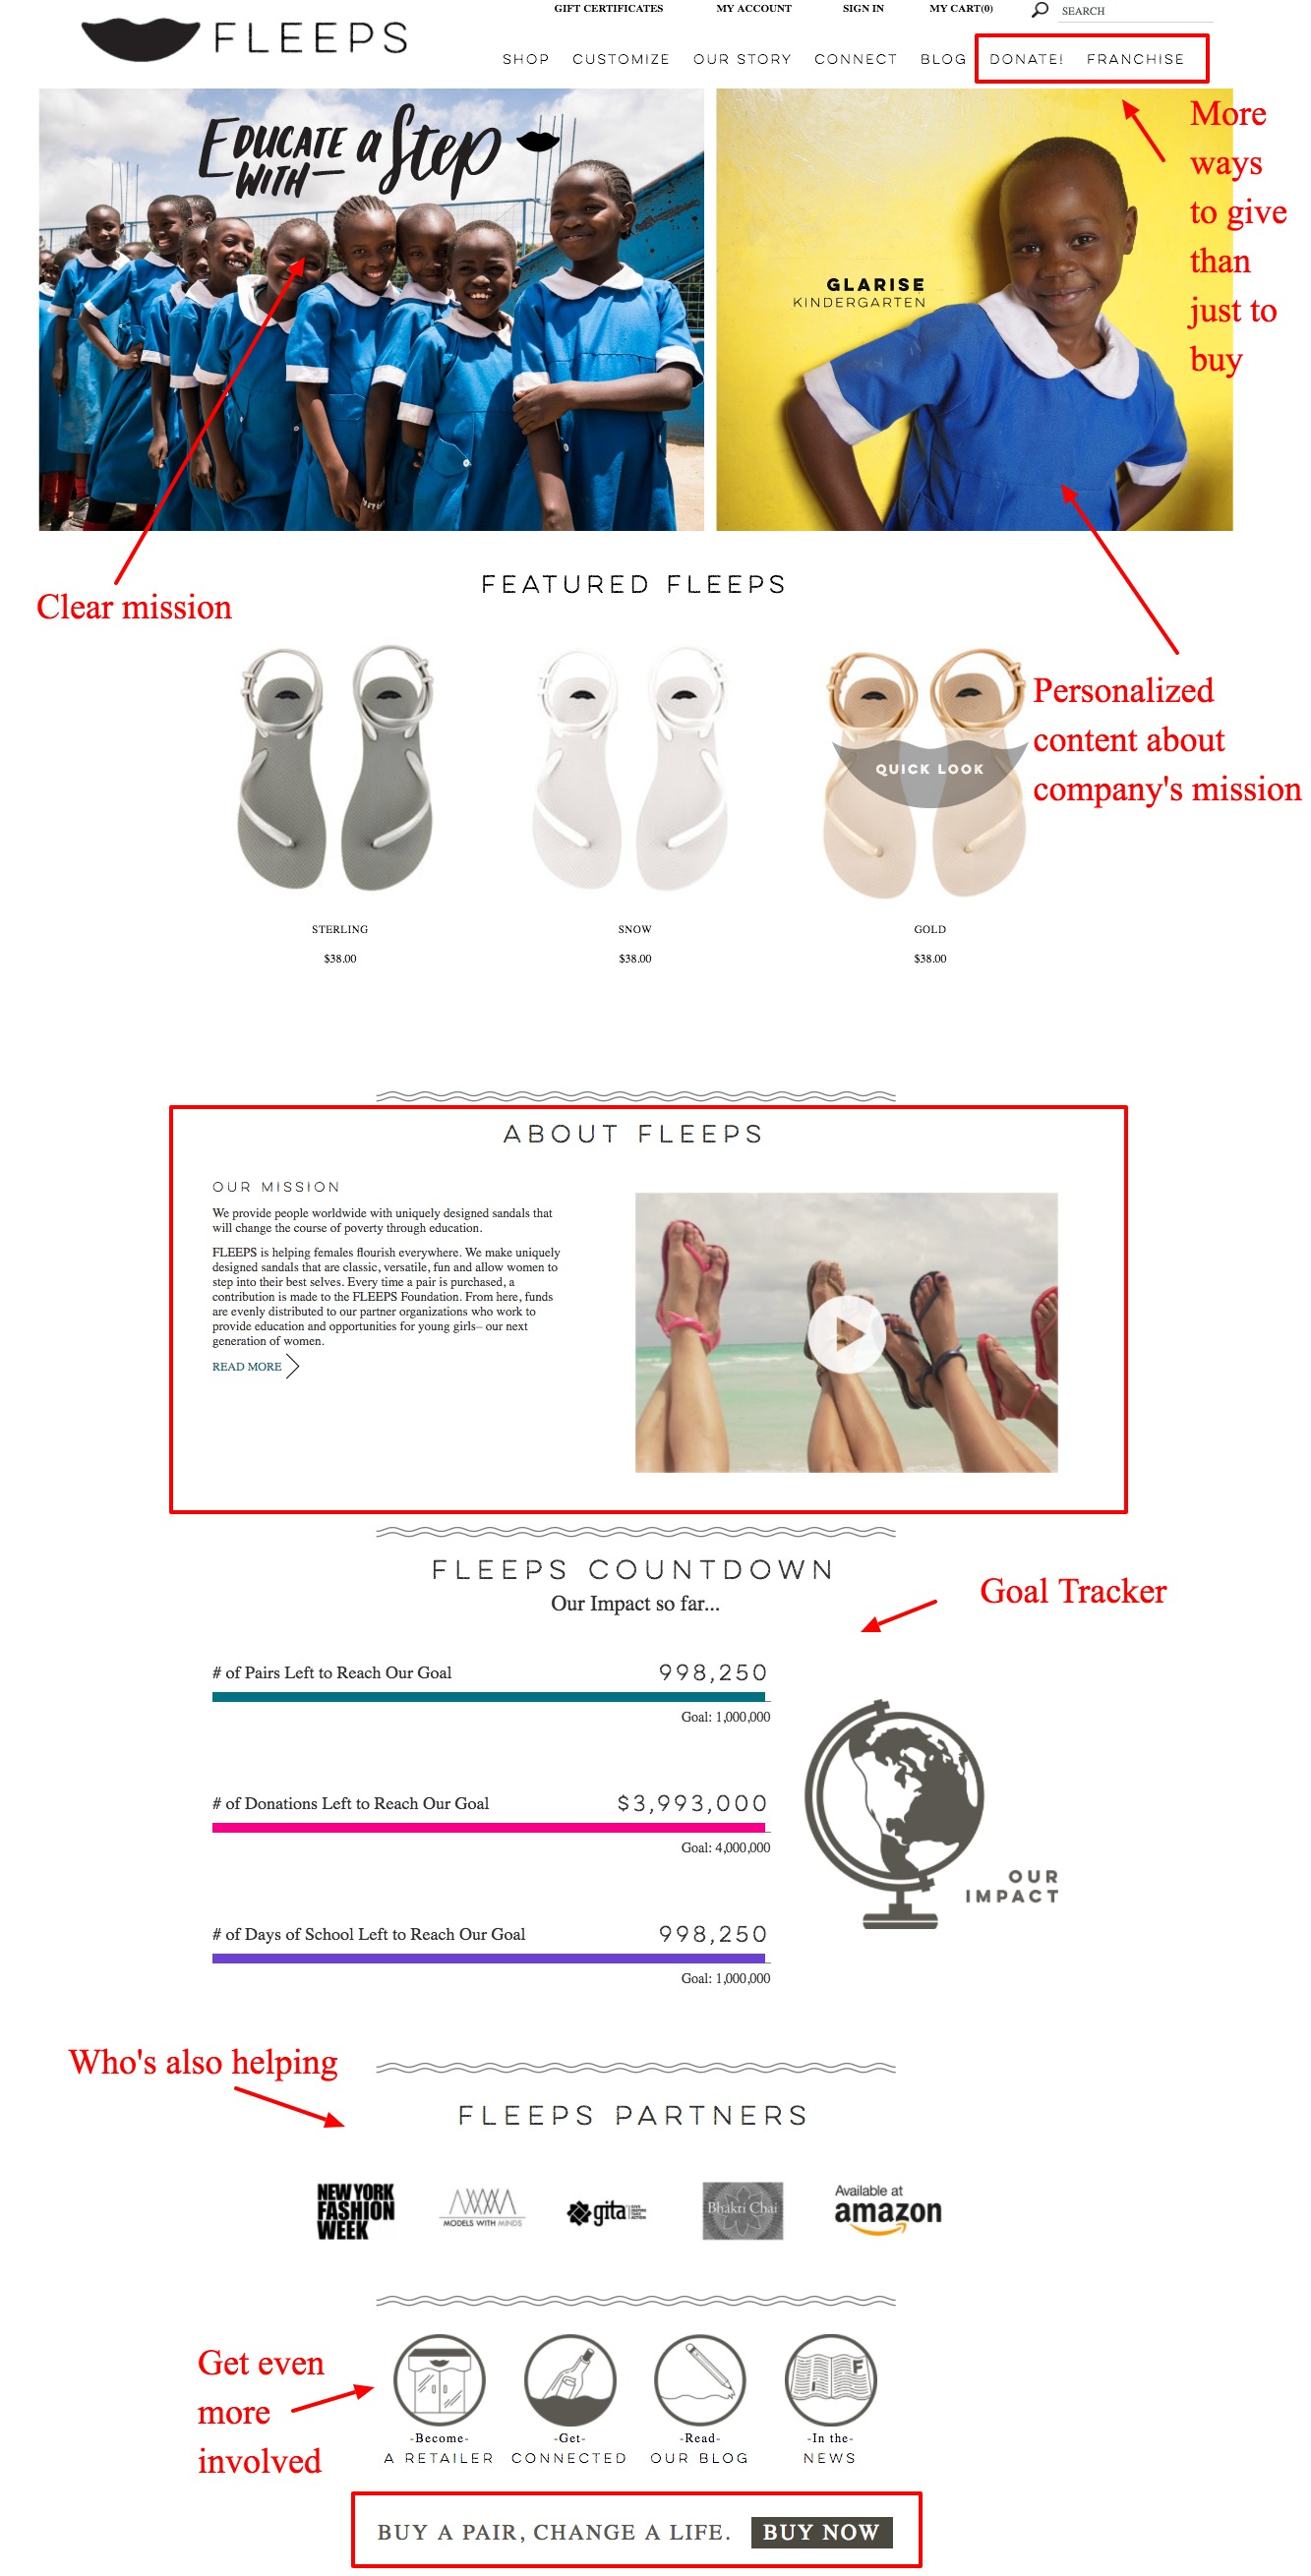 f7f599c8d Ecommerce Branding: 11 Strategies To Build Your Brand [+ examples]